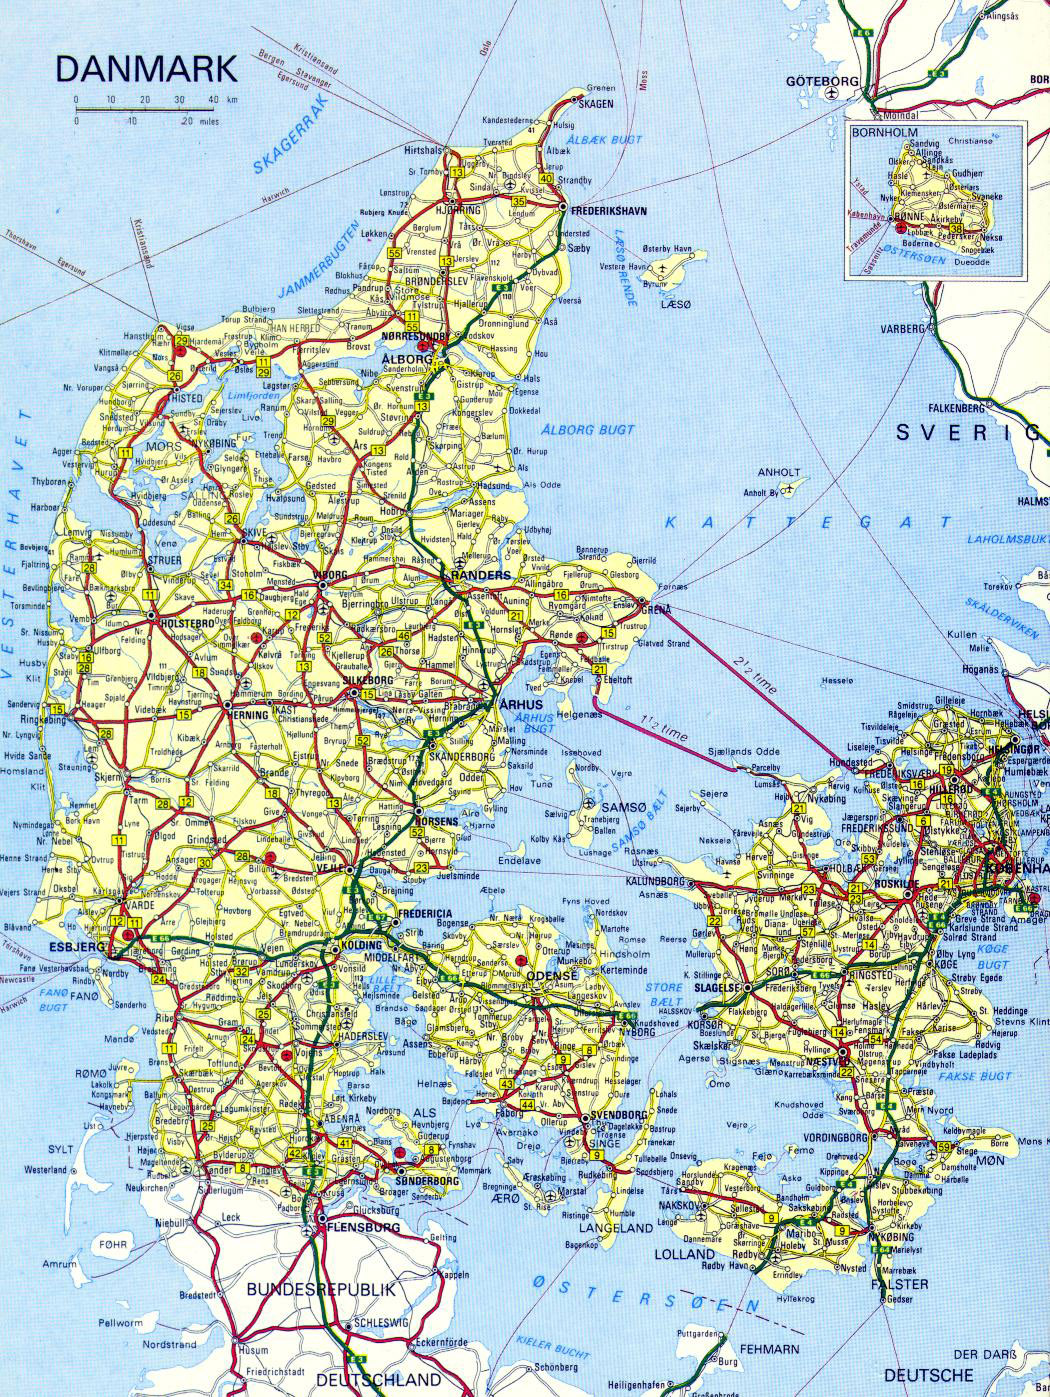 Detailed road map of Denmark Denmark detailed road map Vidiani